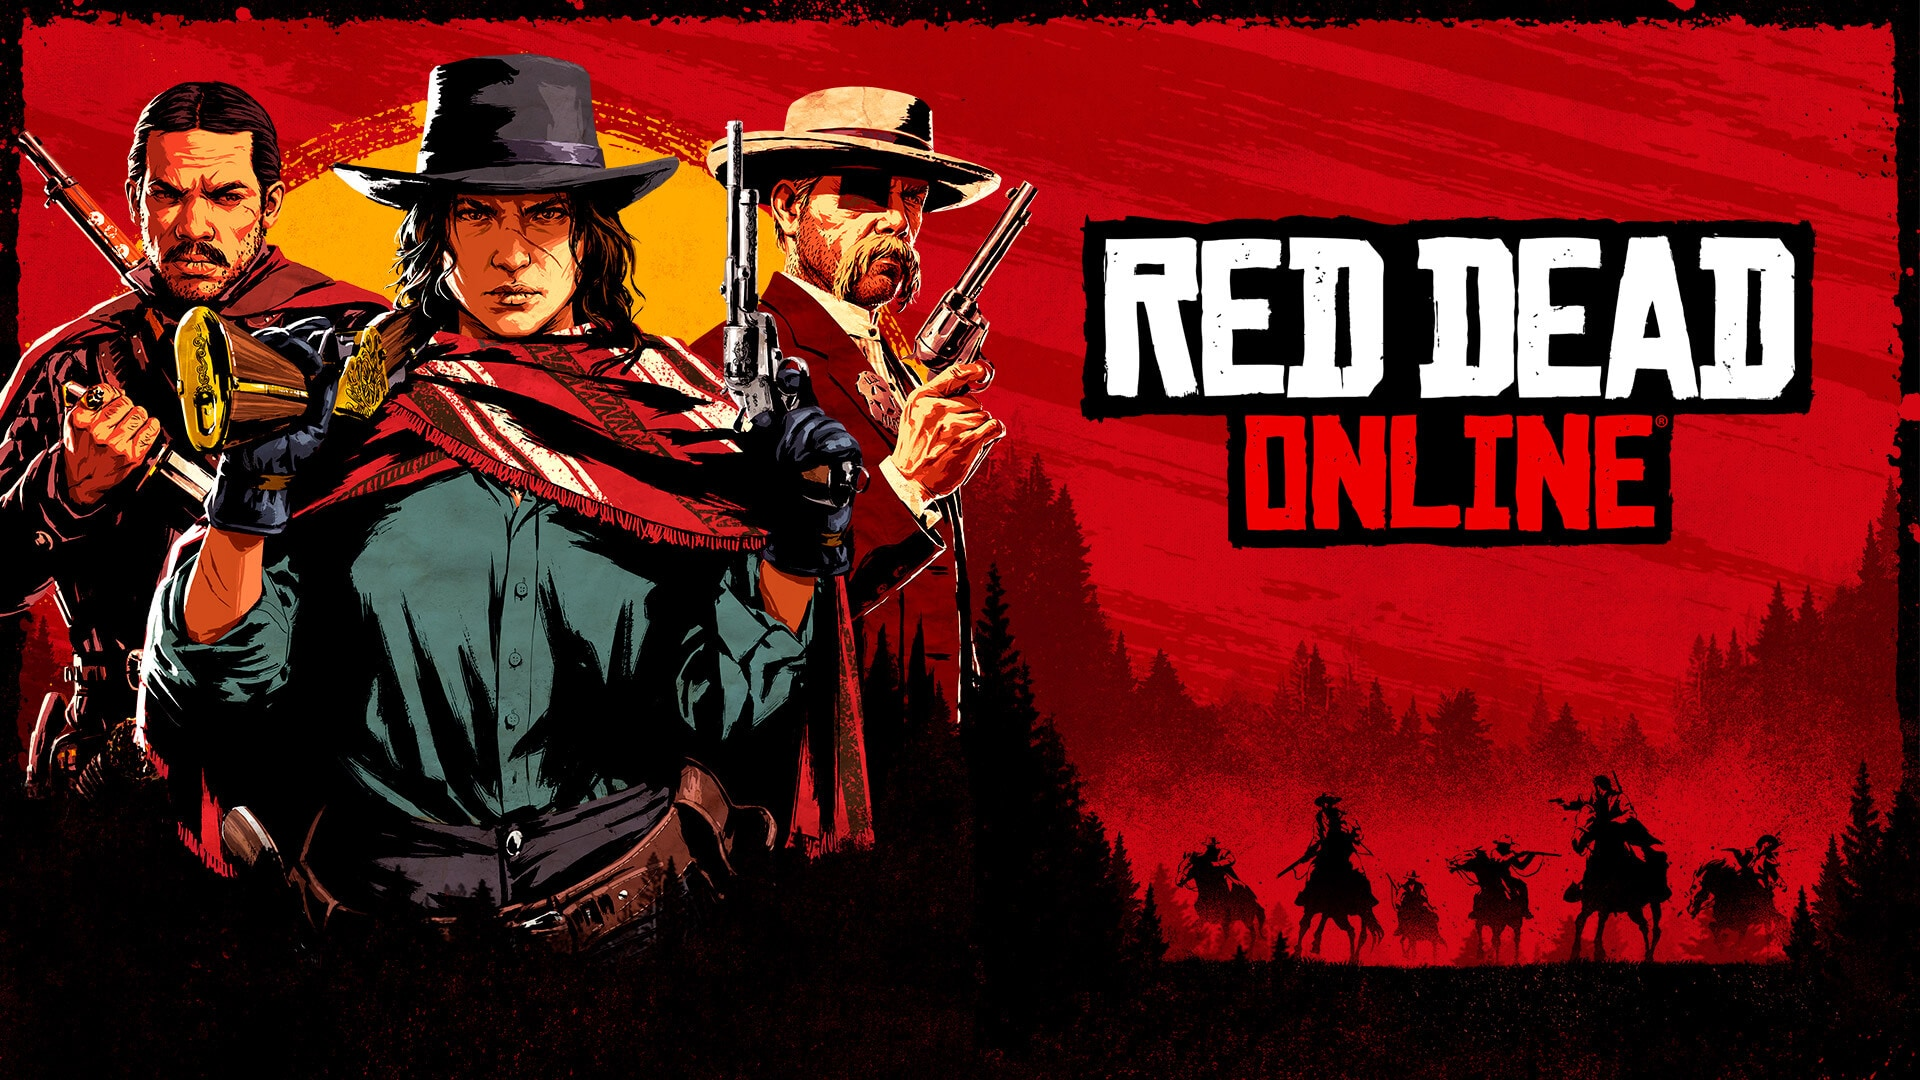 Play Red Dead Redemption 2 and Red Dead Online on Epic Games Store